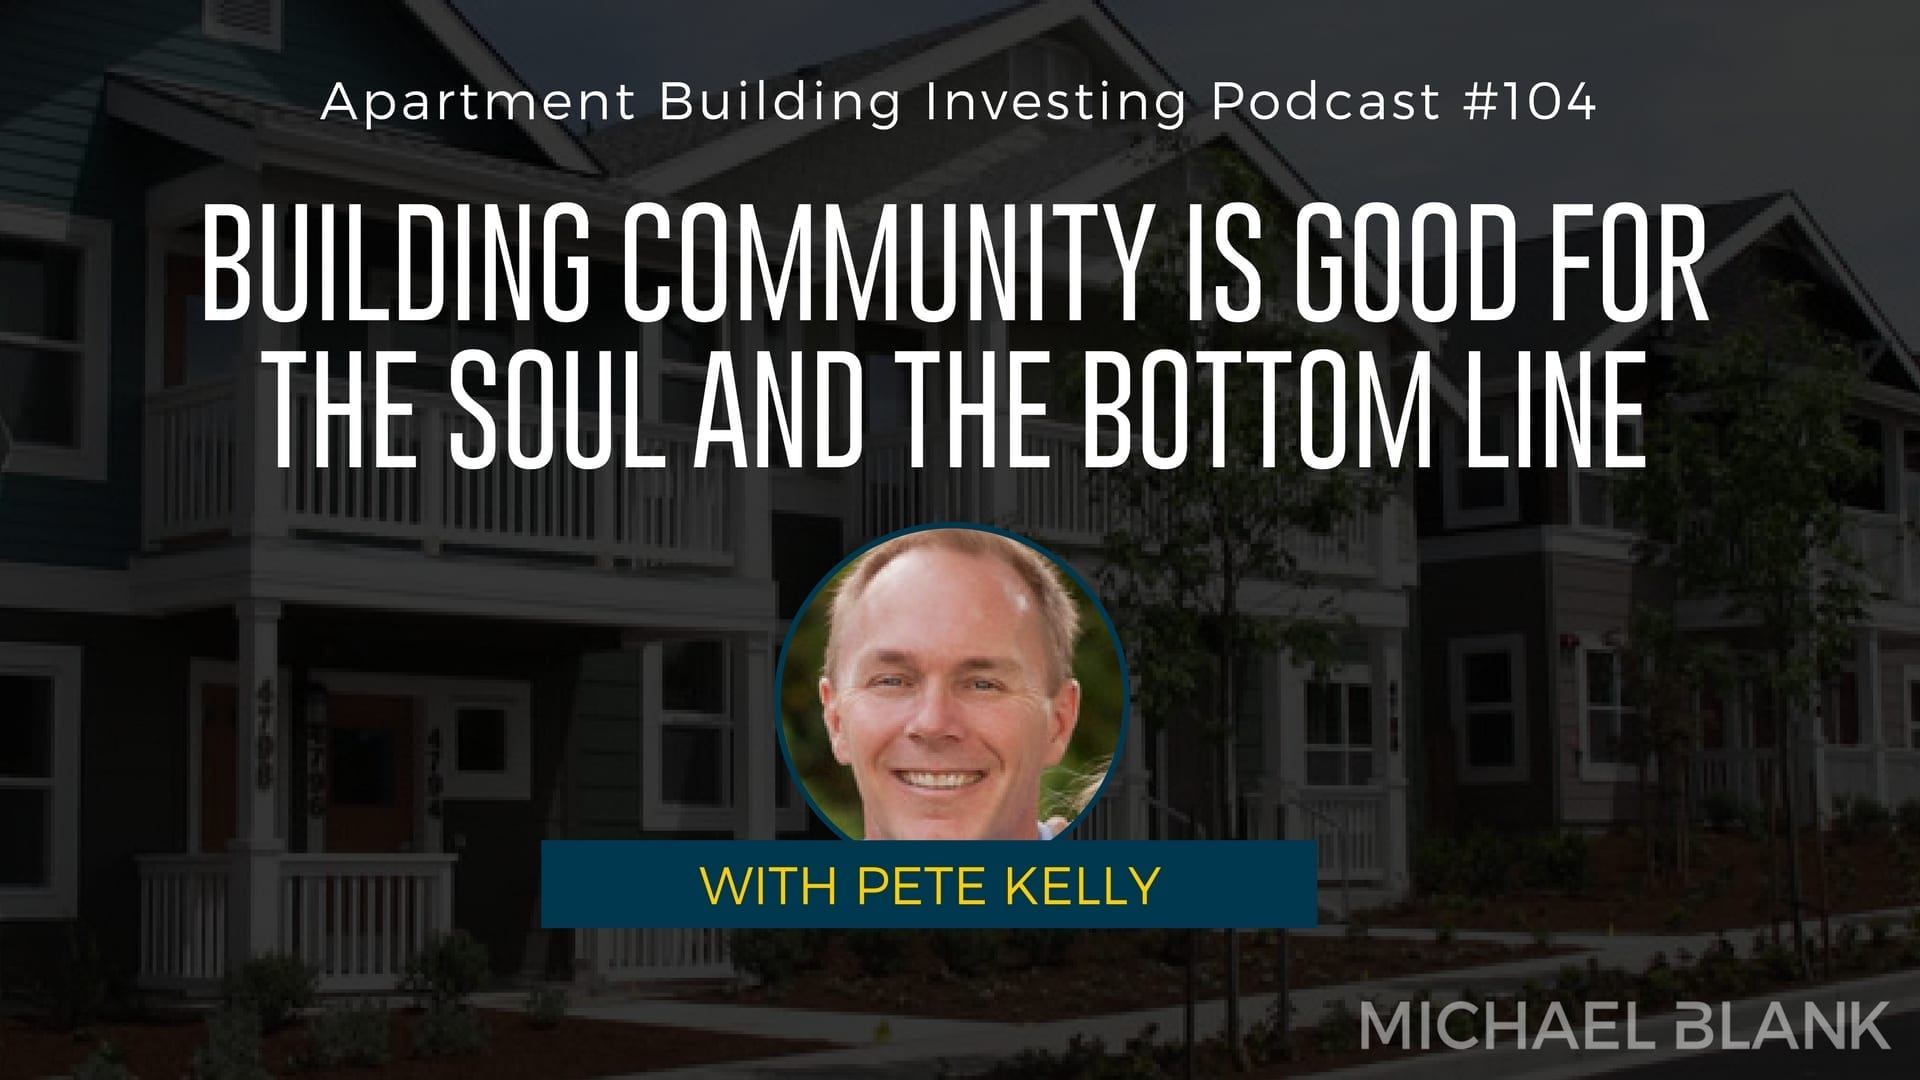 MB 104: Building Community is Good for the Soul AND the Bottom Line – With Pete Kelly